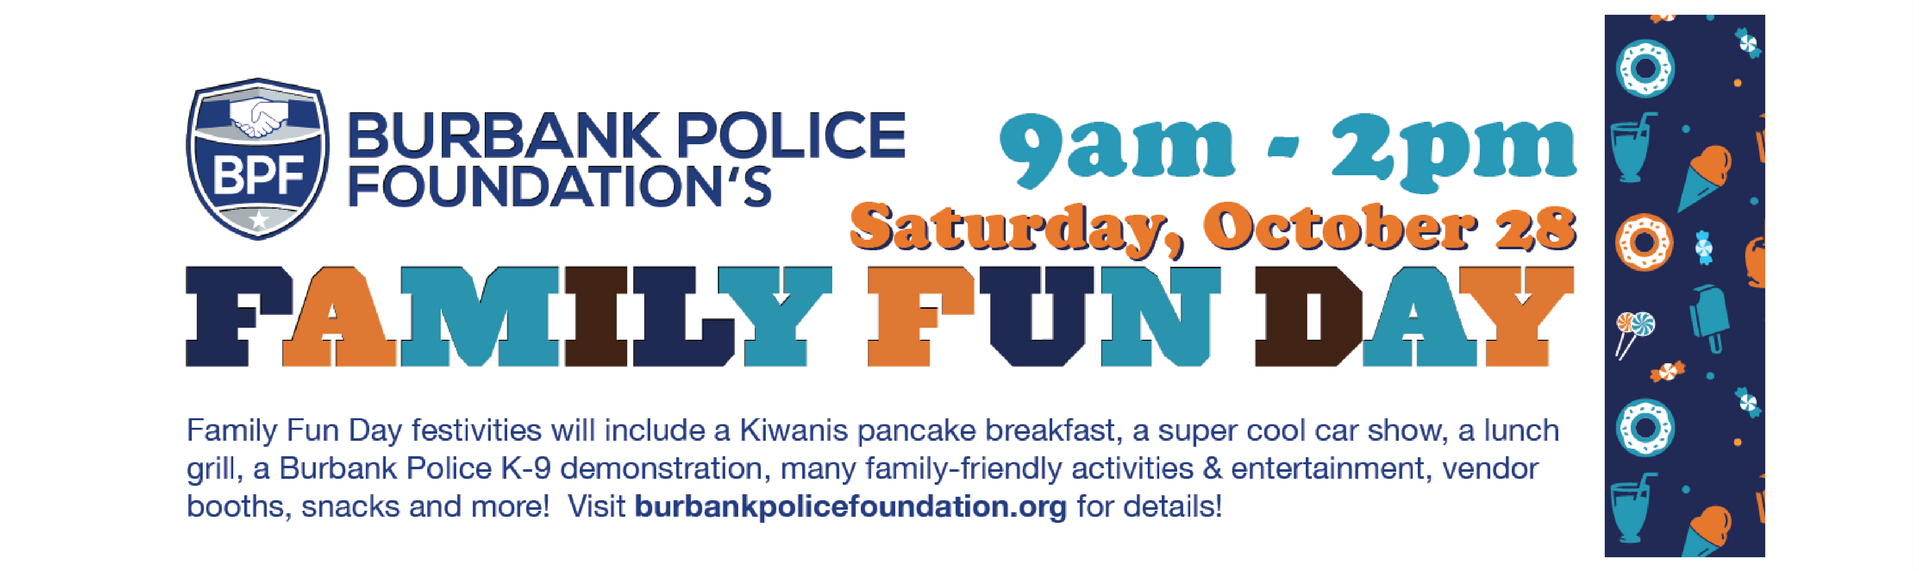 Burbank Police Foundation Family Fun Day - Oct 28